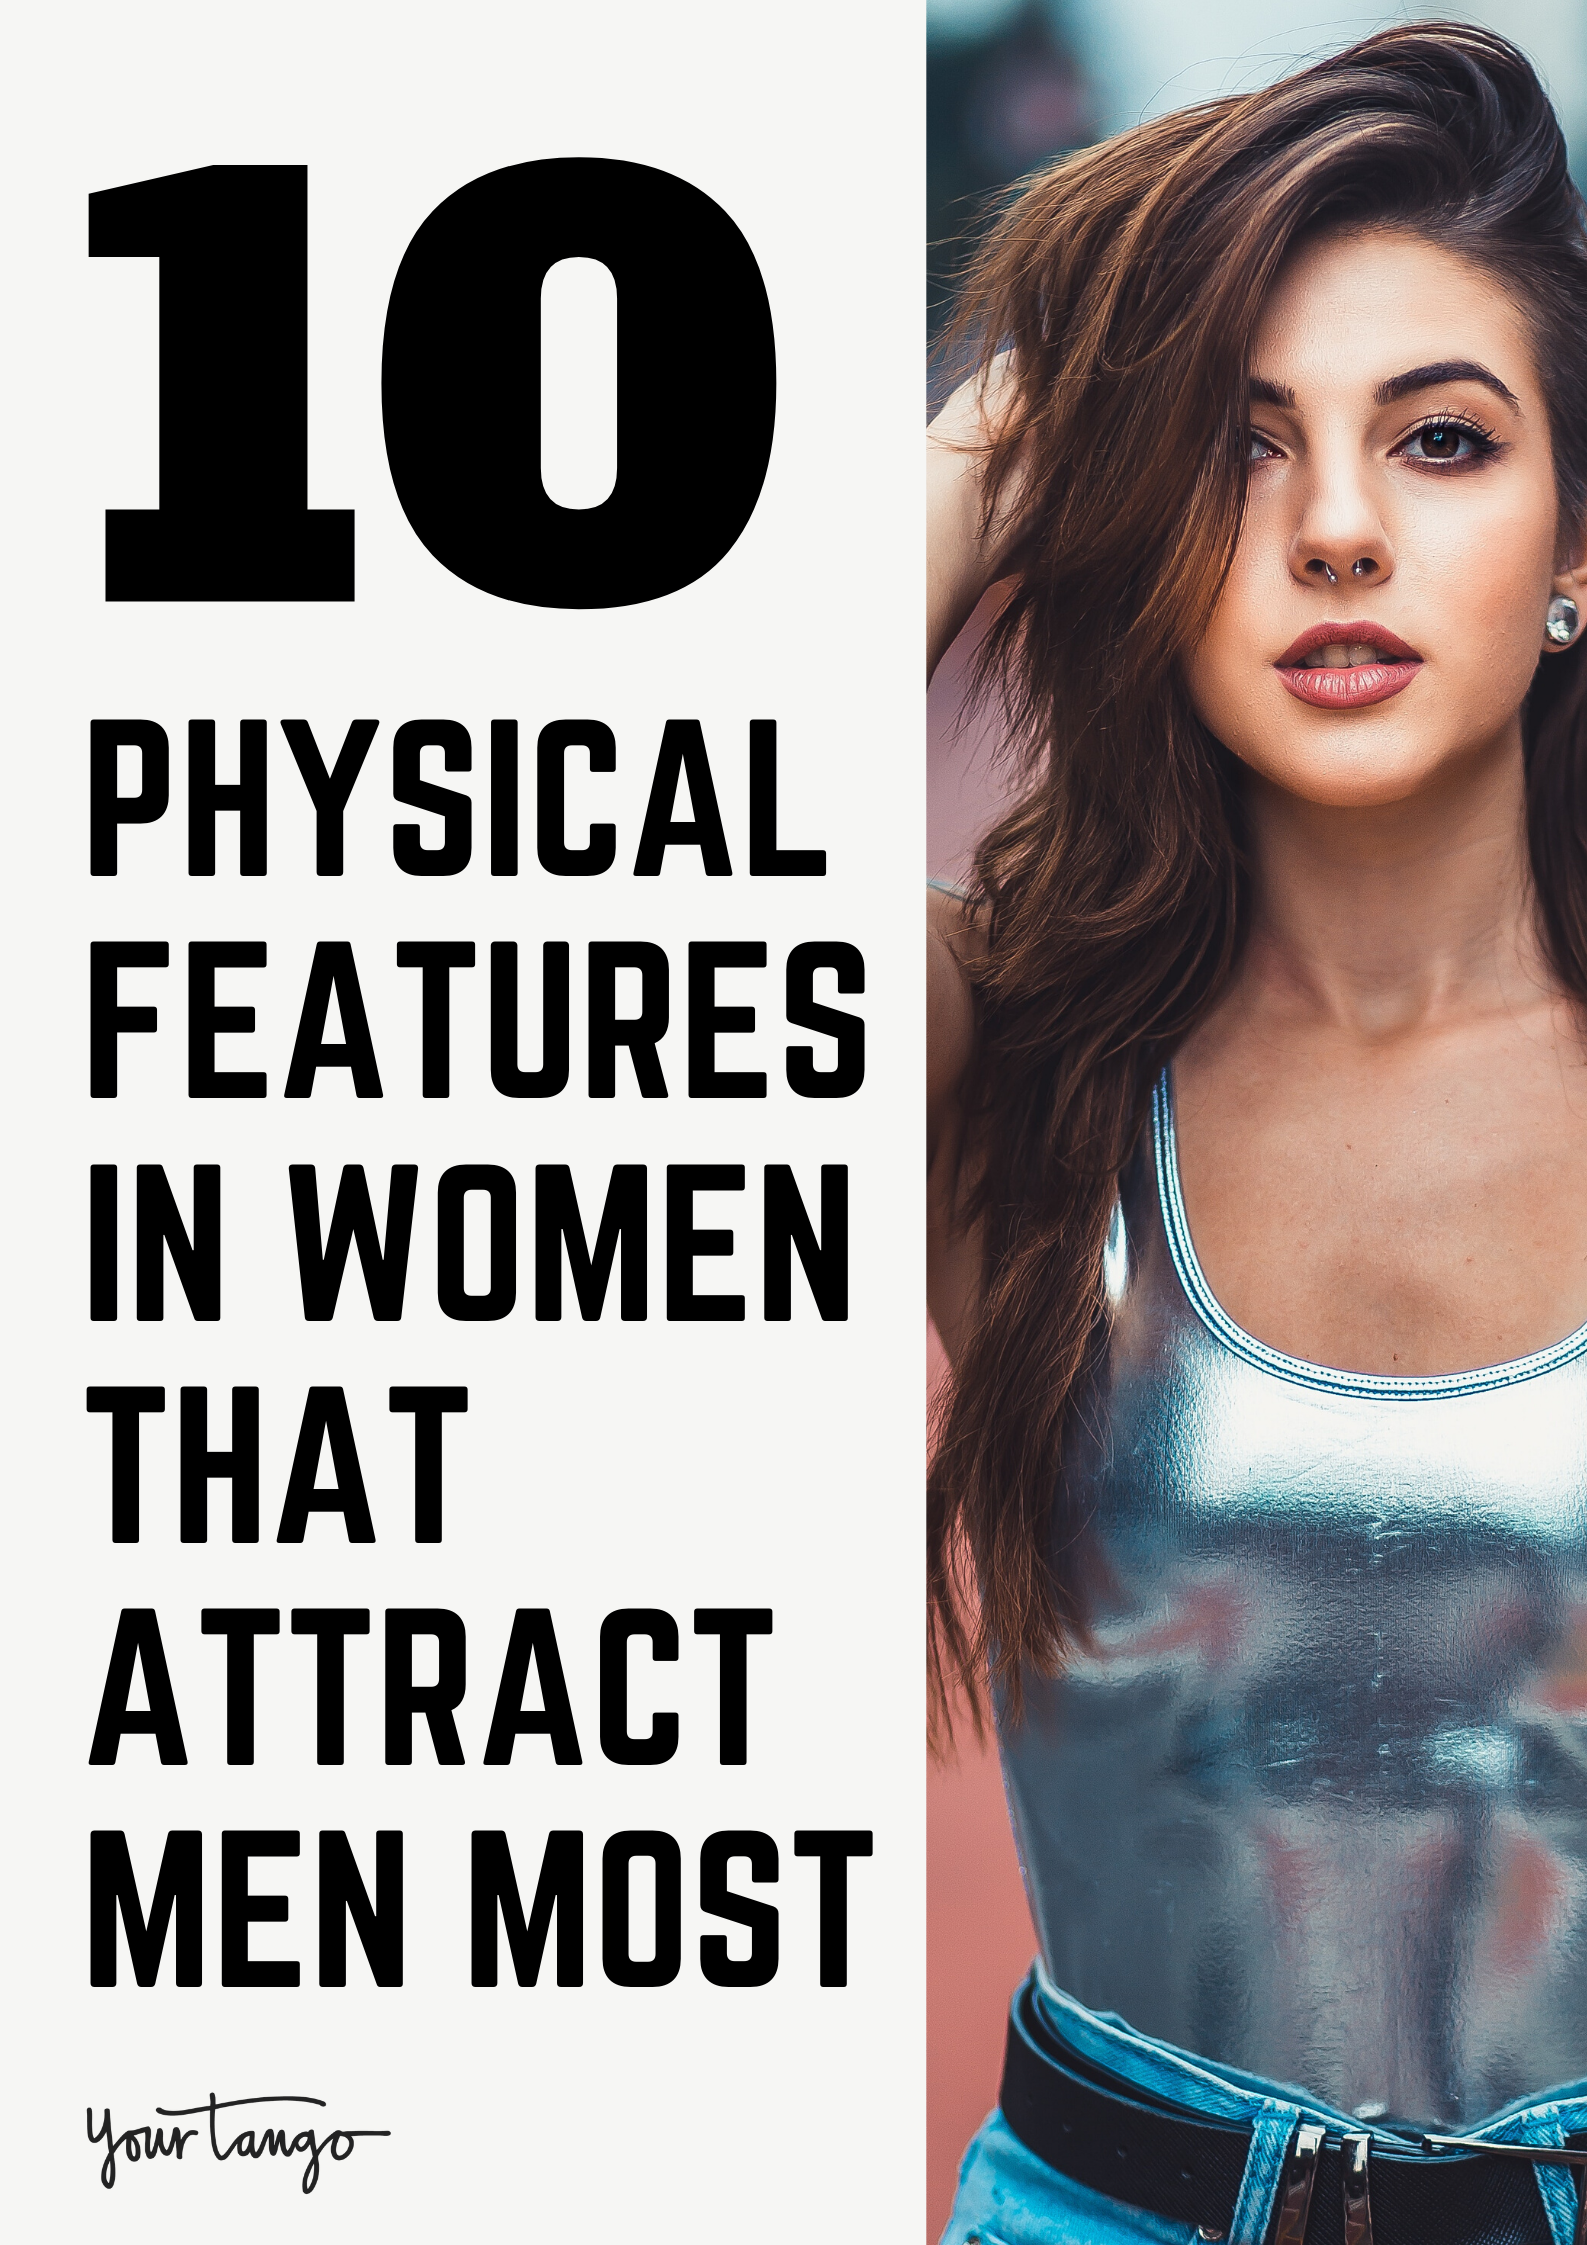 A woman attractive most features on What Makes